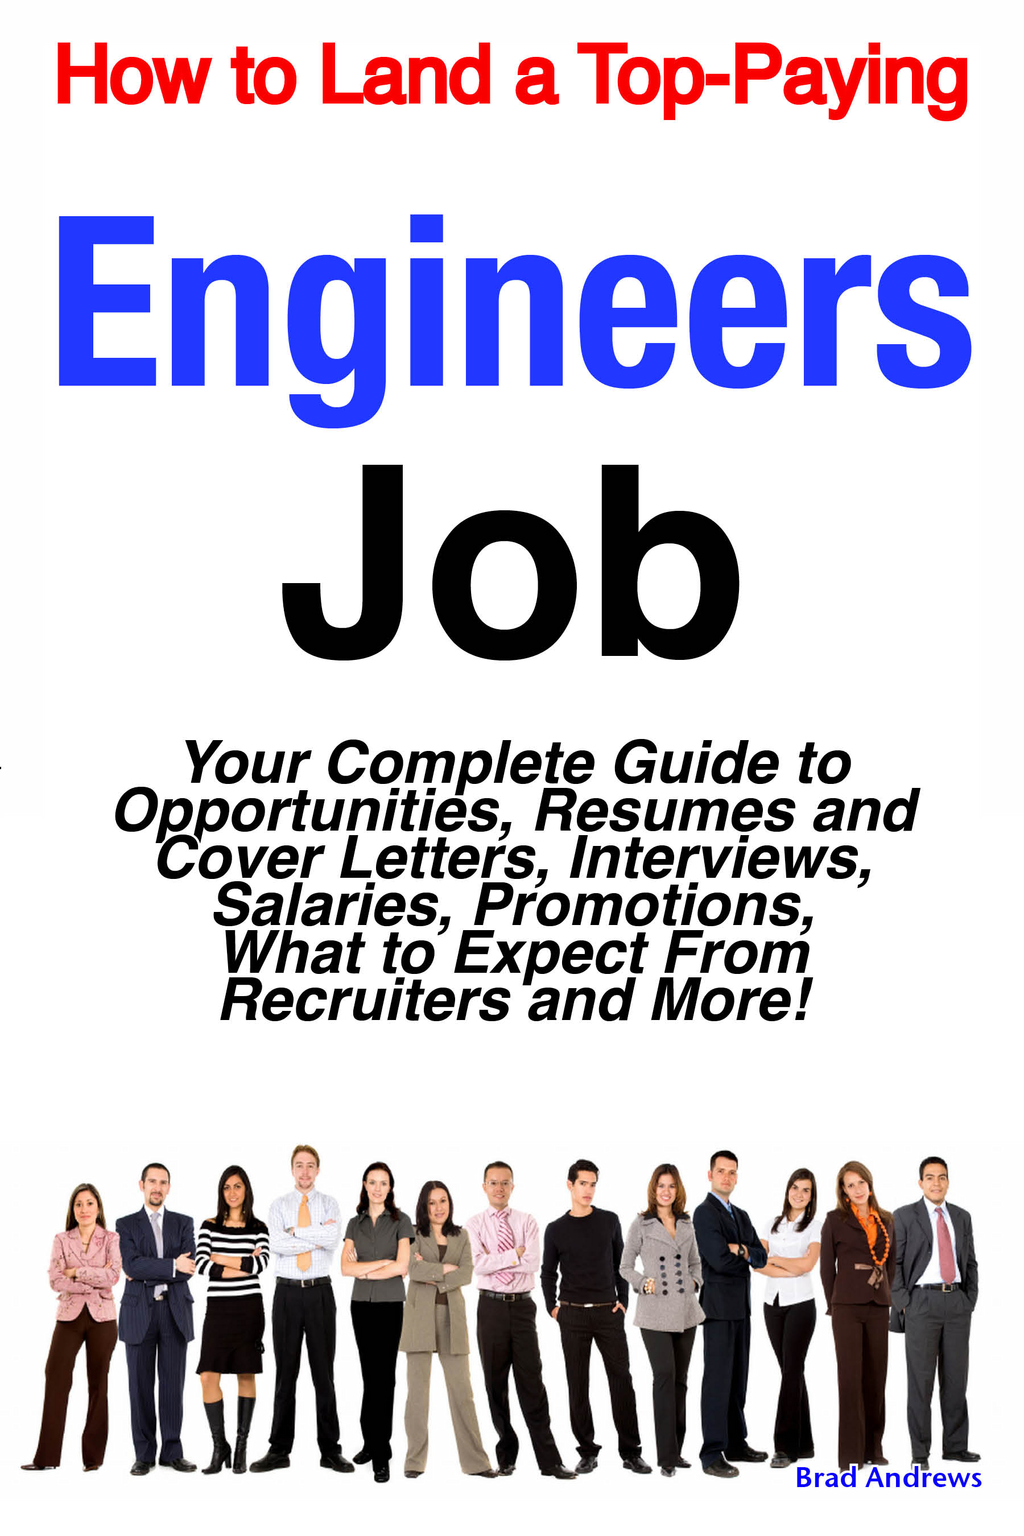 How to Land a Top-Paying Engineers Job: Your Complete Guide to Opportunities, Resumes and Cover Letters, Interviews, Salaries, Promotions, What to Expect From Recruiters and More!